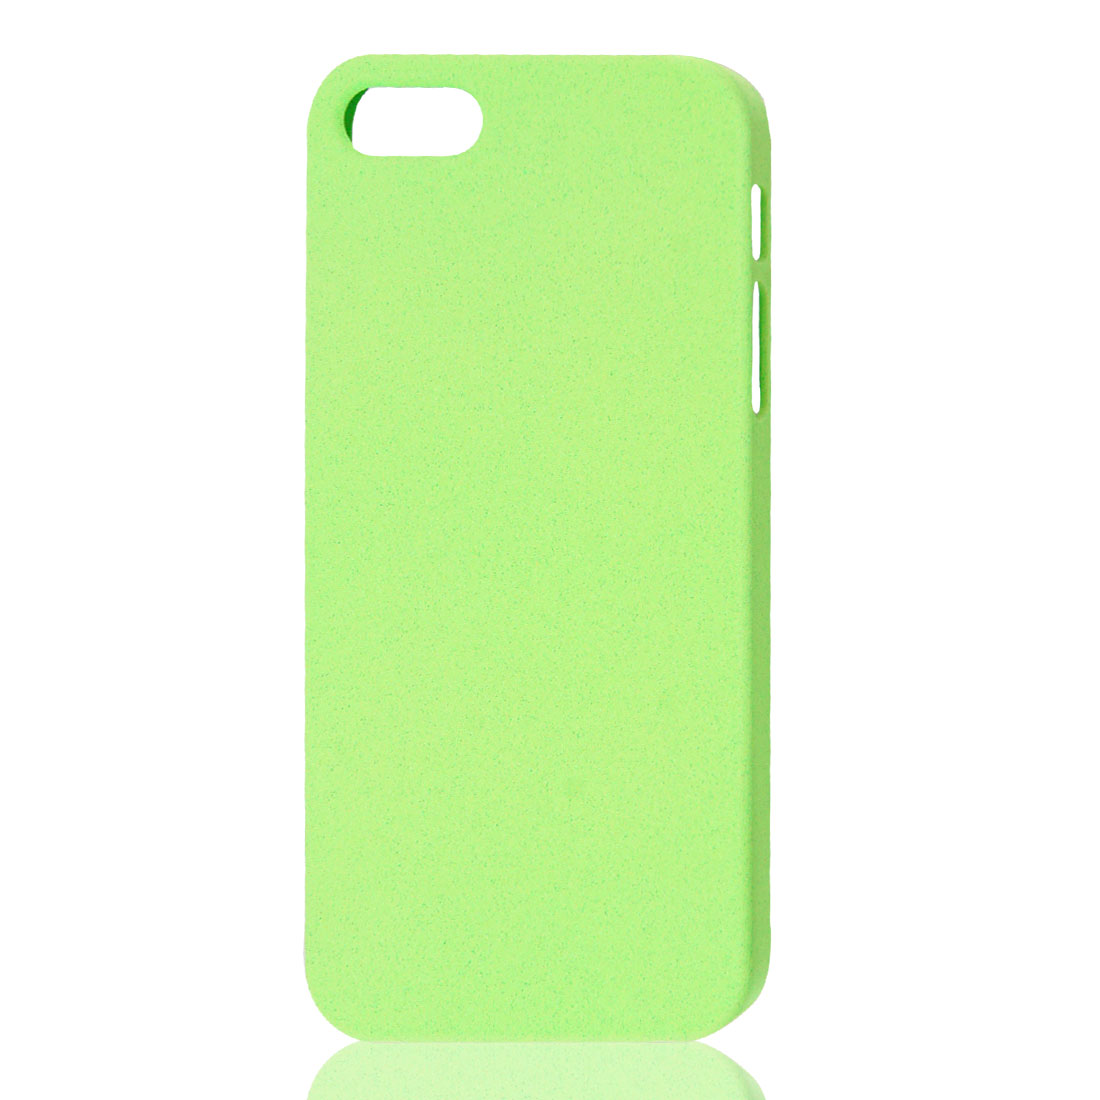 Green Hard Back Case Cover Protector for iPhone 5 5G 5th Gen